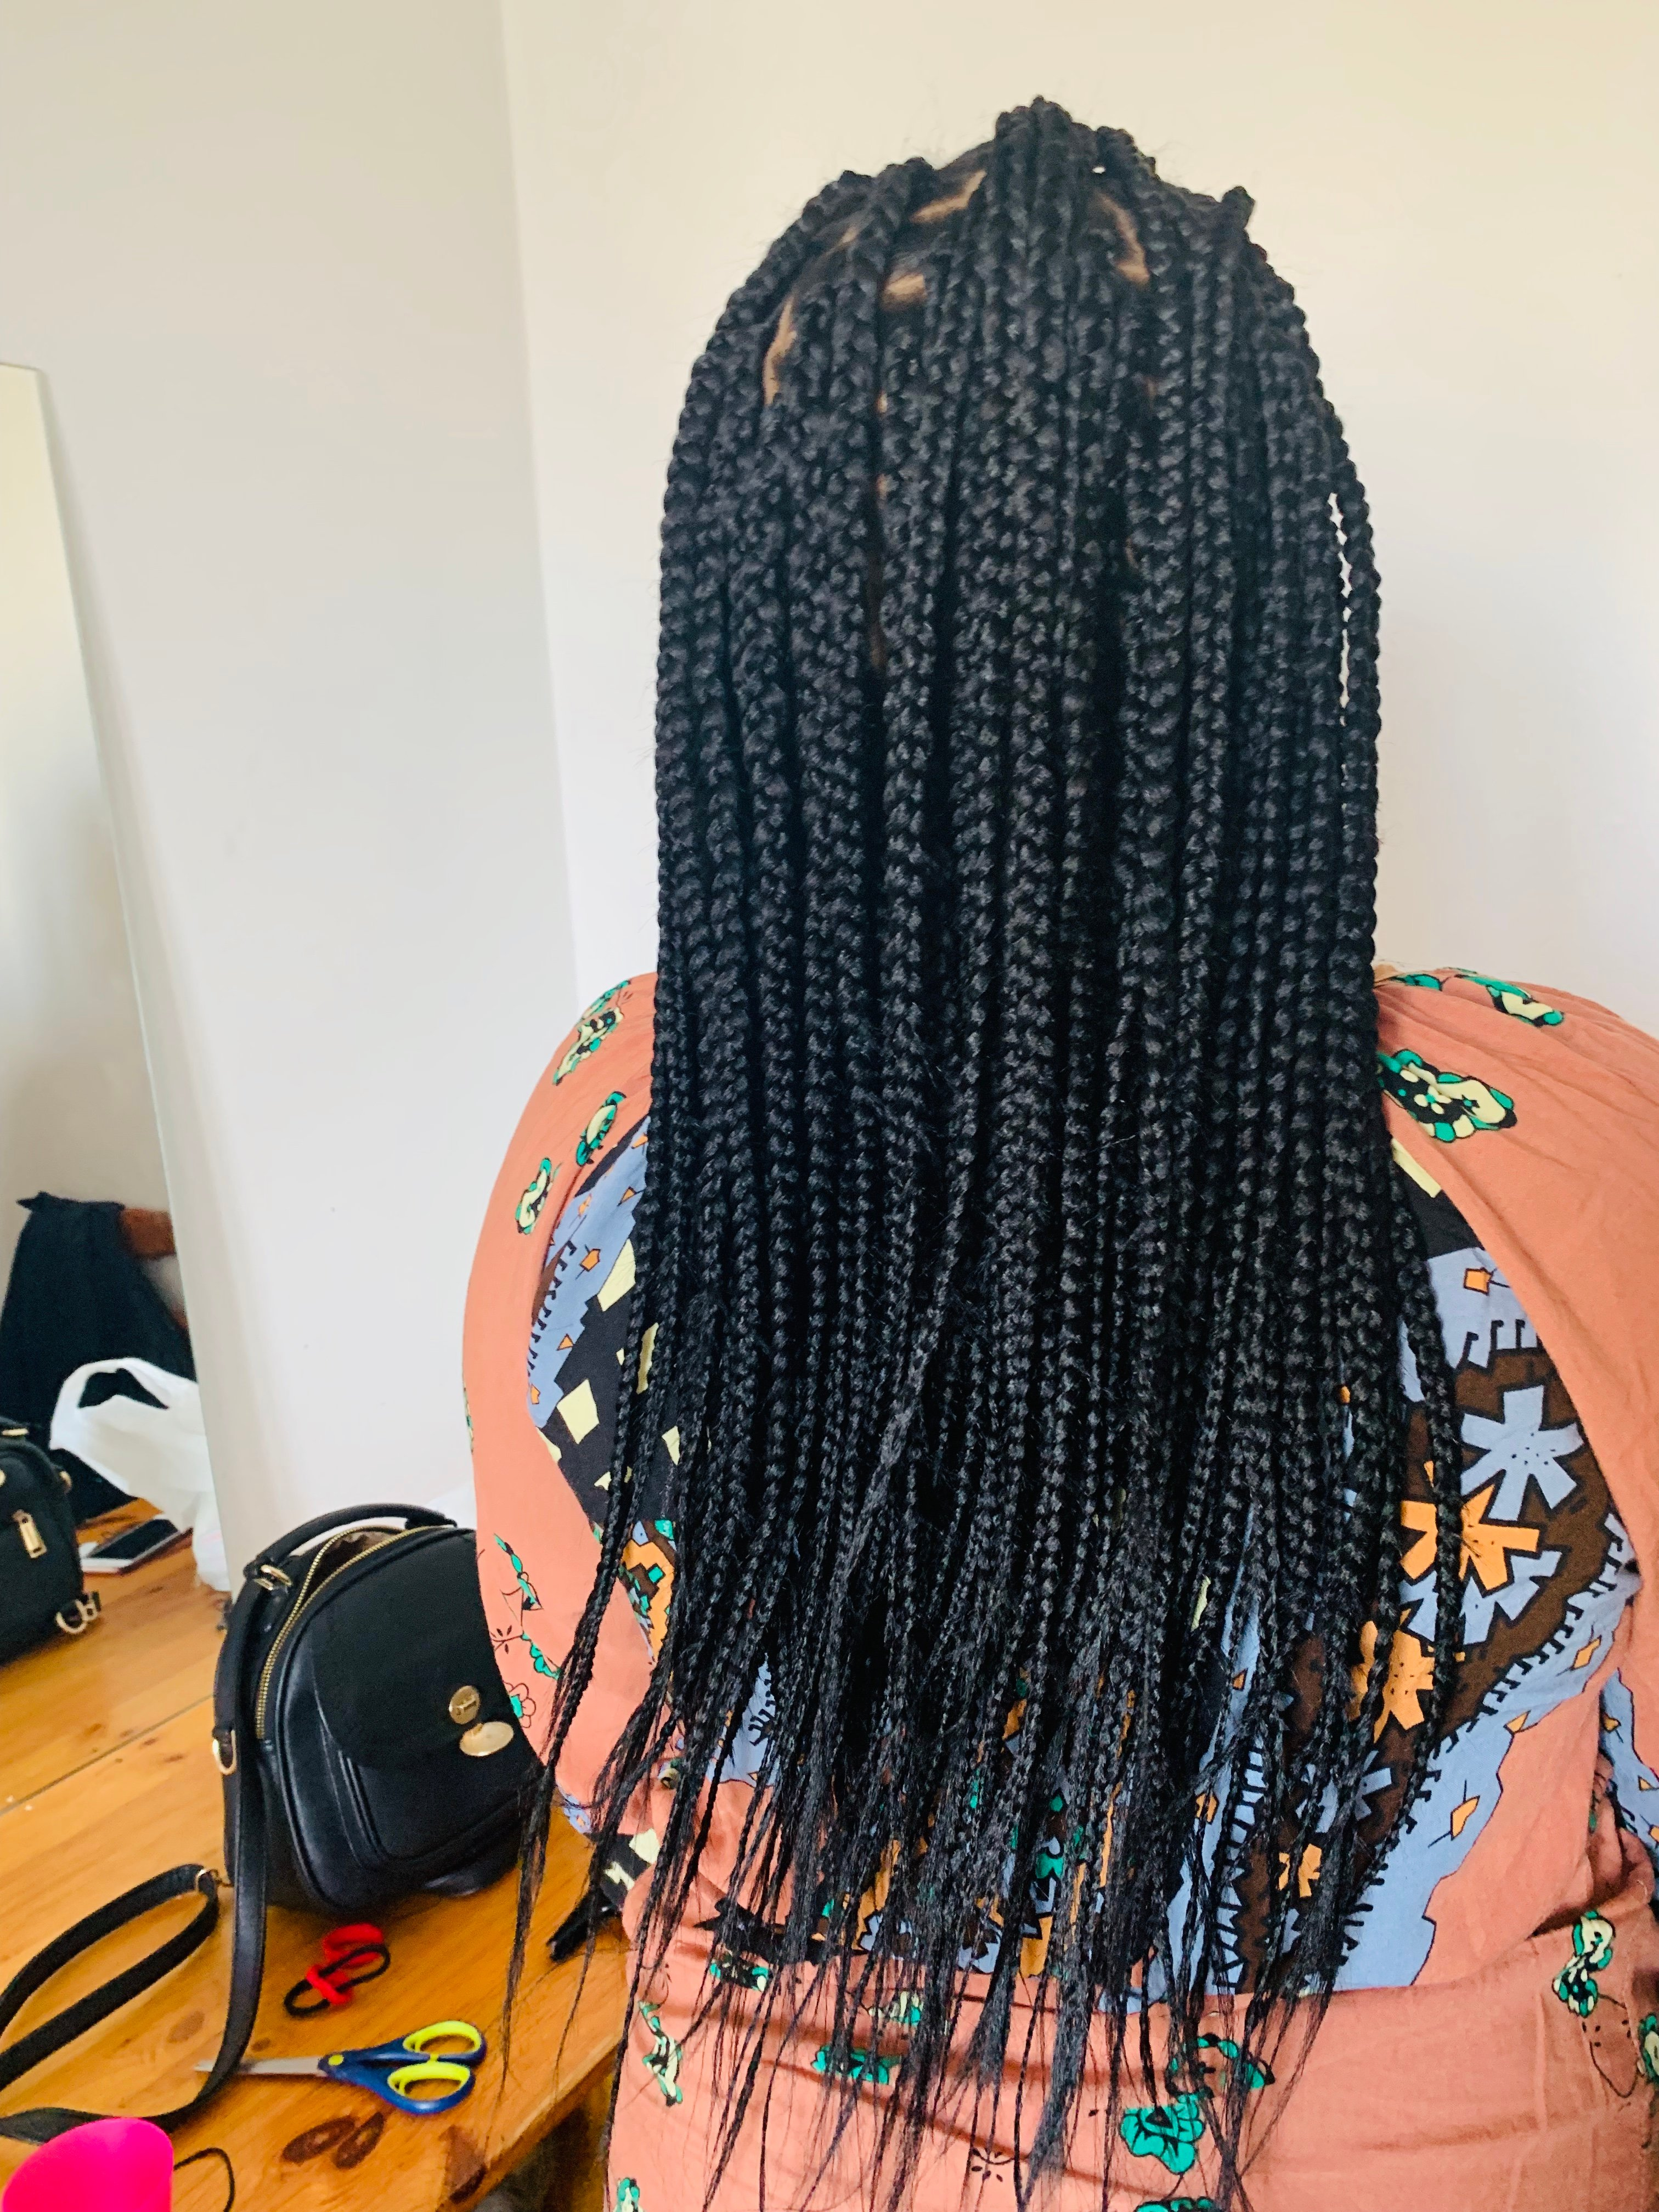 salon de coiffure afro tresse tresses box braids crochet braids vanilles tissages paris 75 77 78 91 92 93 94 95 PJOEIPEJ